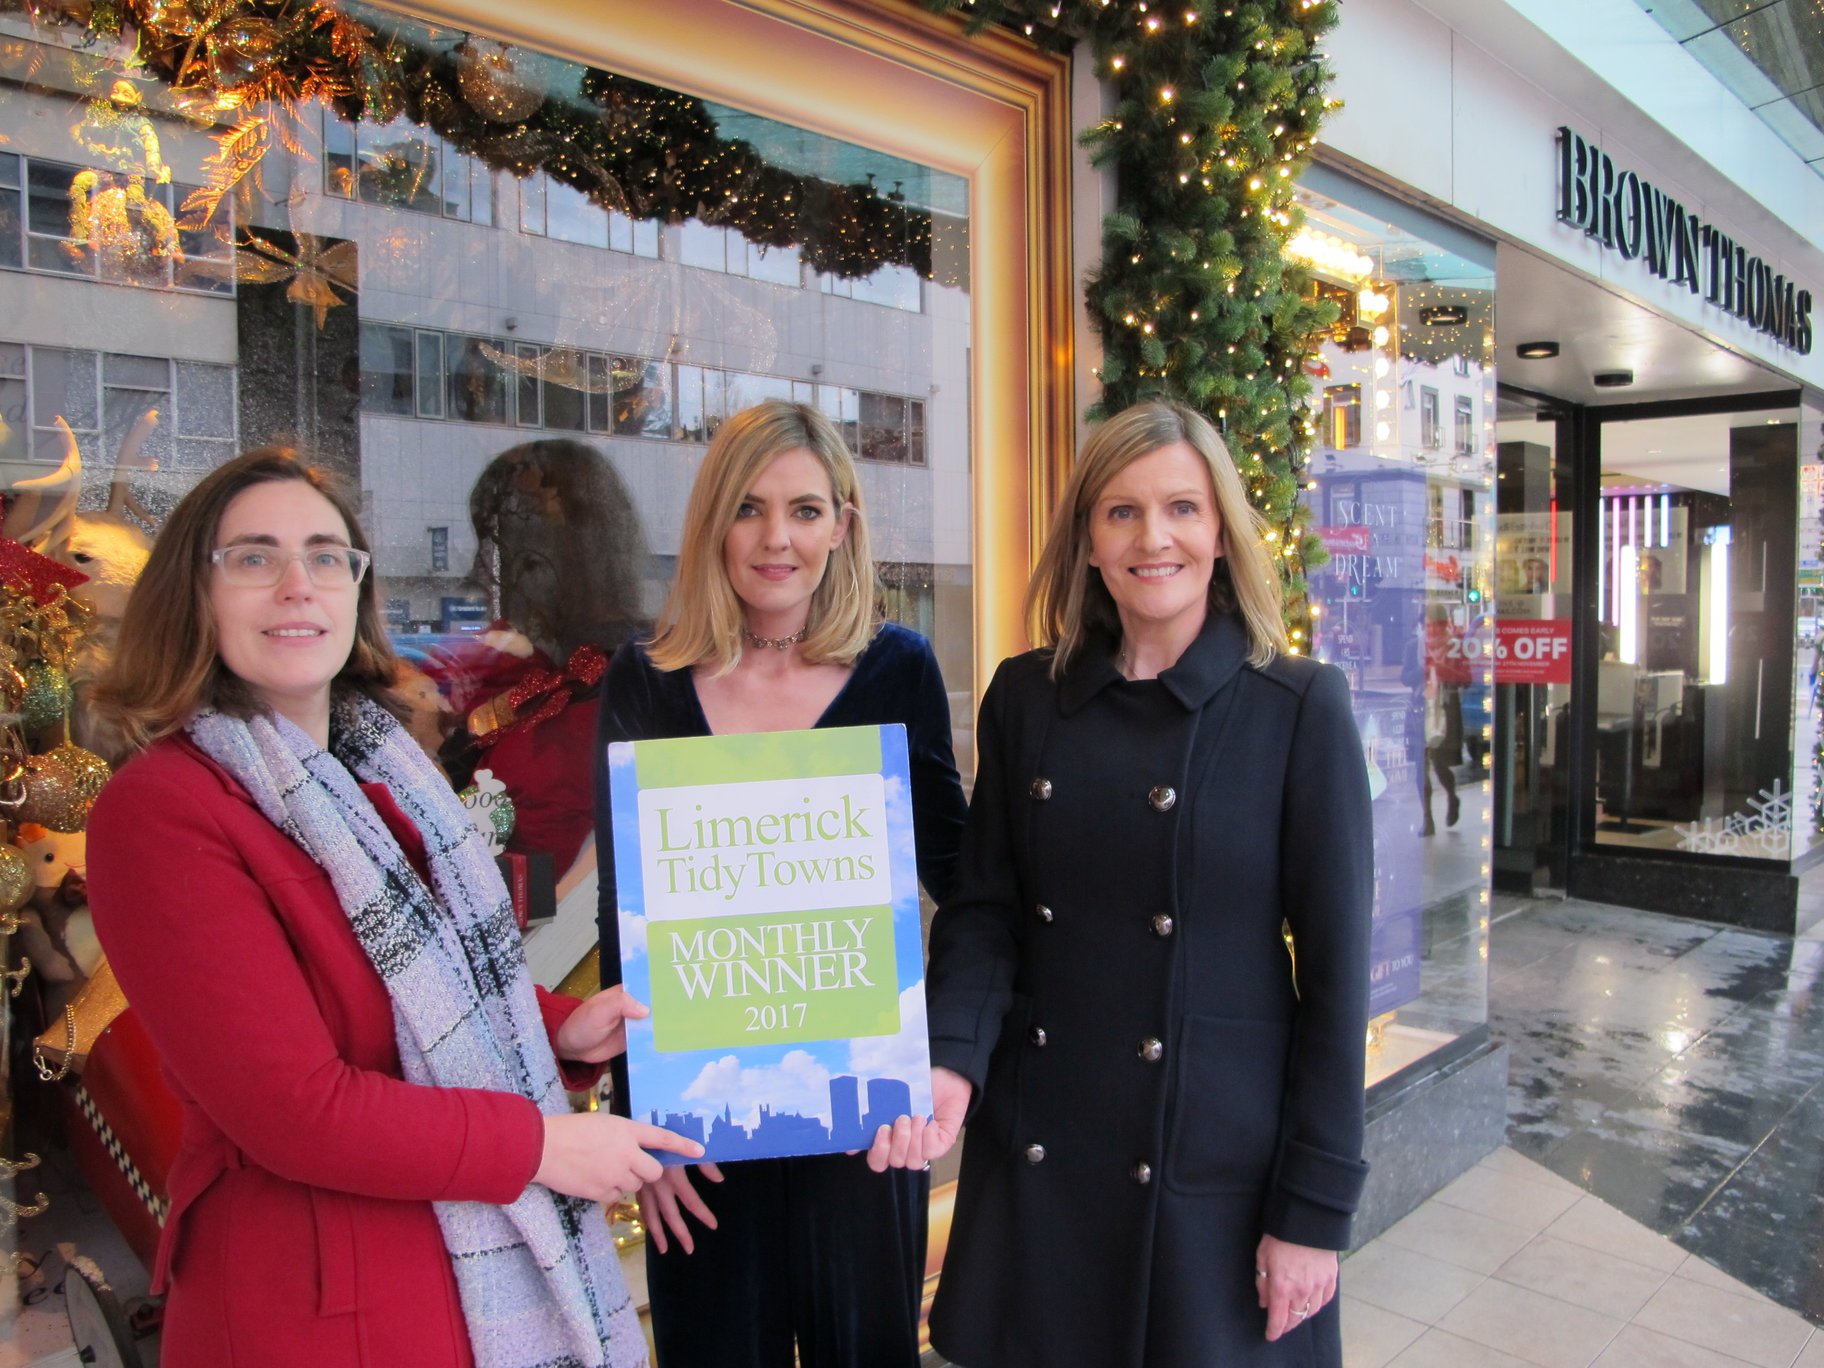 Limerick City Tidy Towns Final Monthly Award 2017